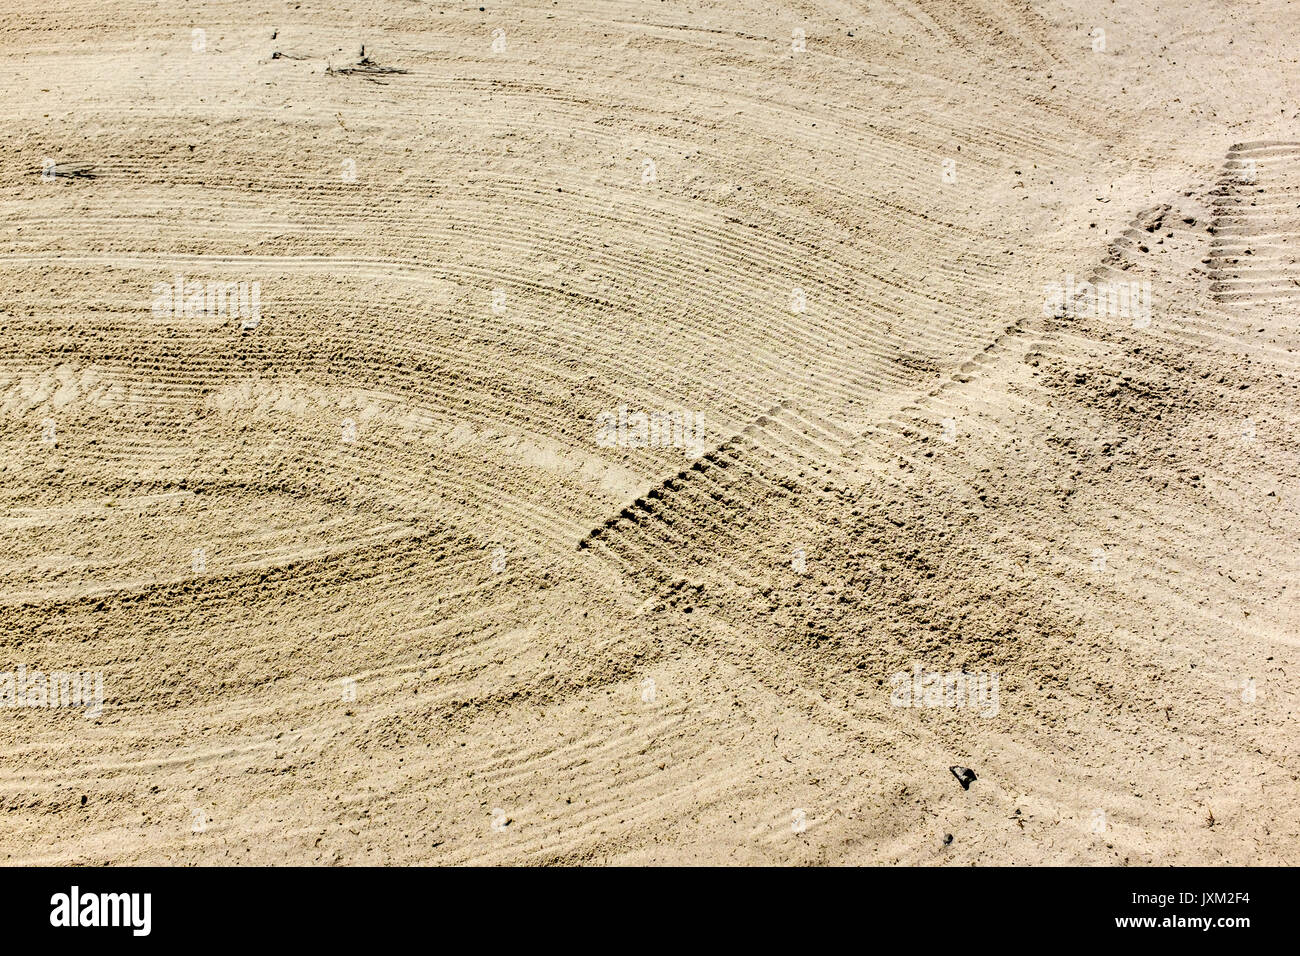 Finely raked sand in a bunker on a gold course - Stock Image